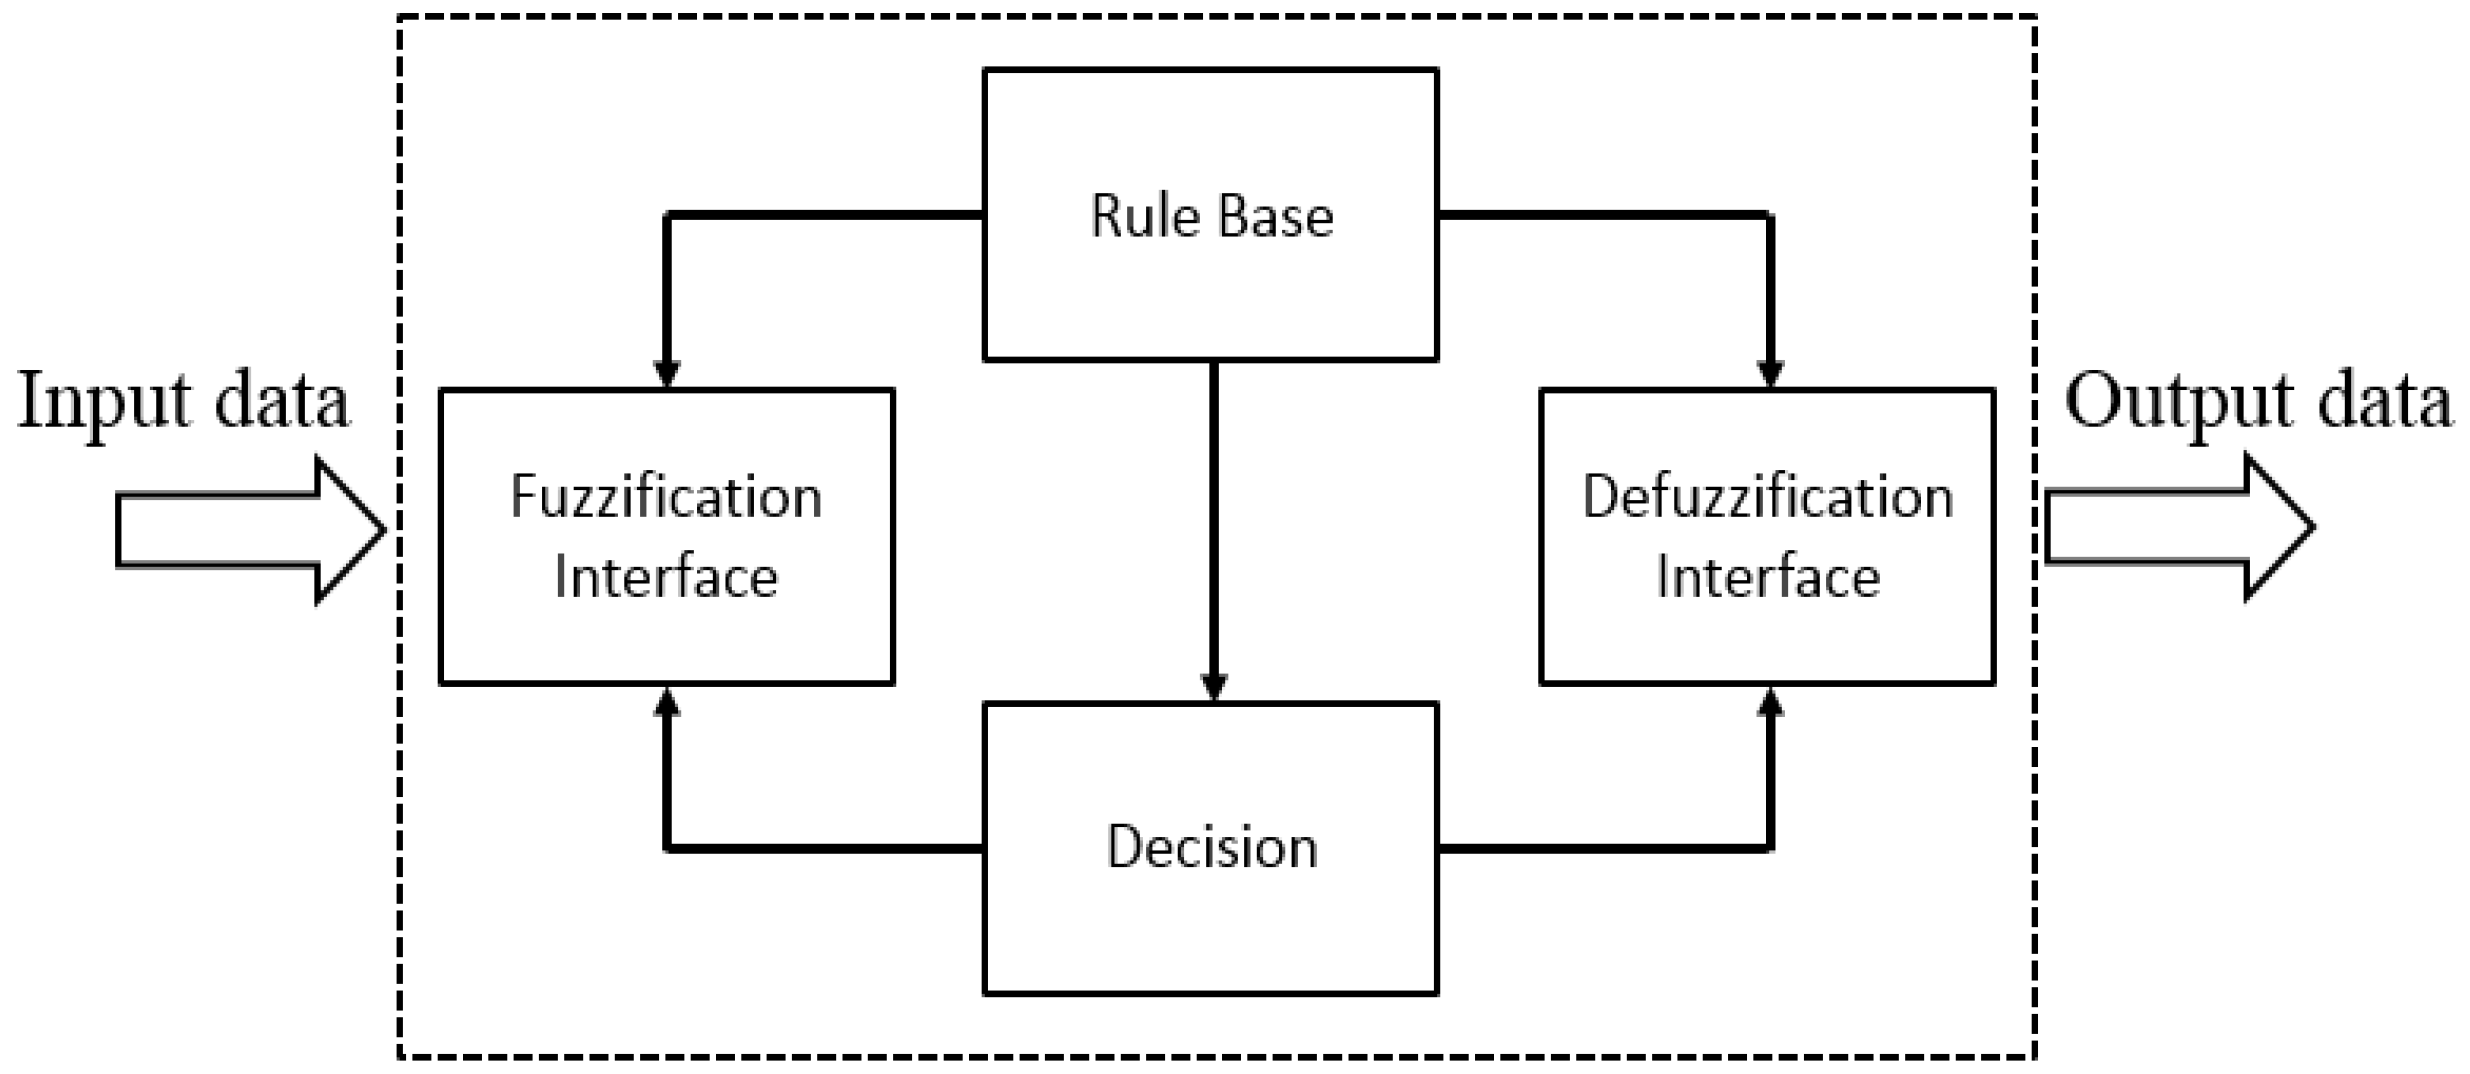 Applied Sciences Free Full Text An Improvement Of A Fuzzy Logic The User Bases His Control Model On Plant Diagrams No